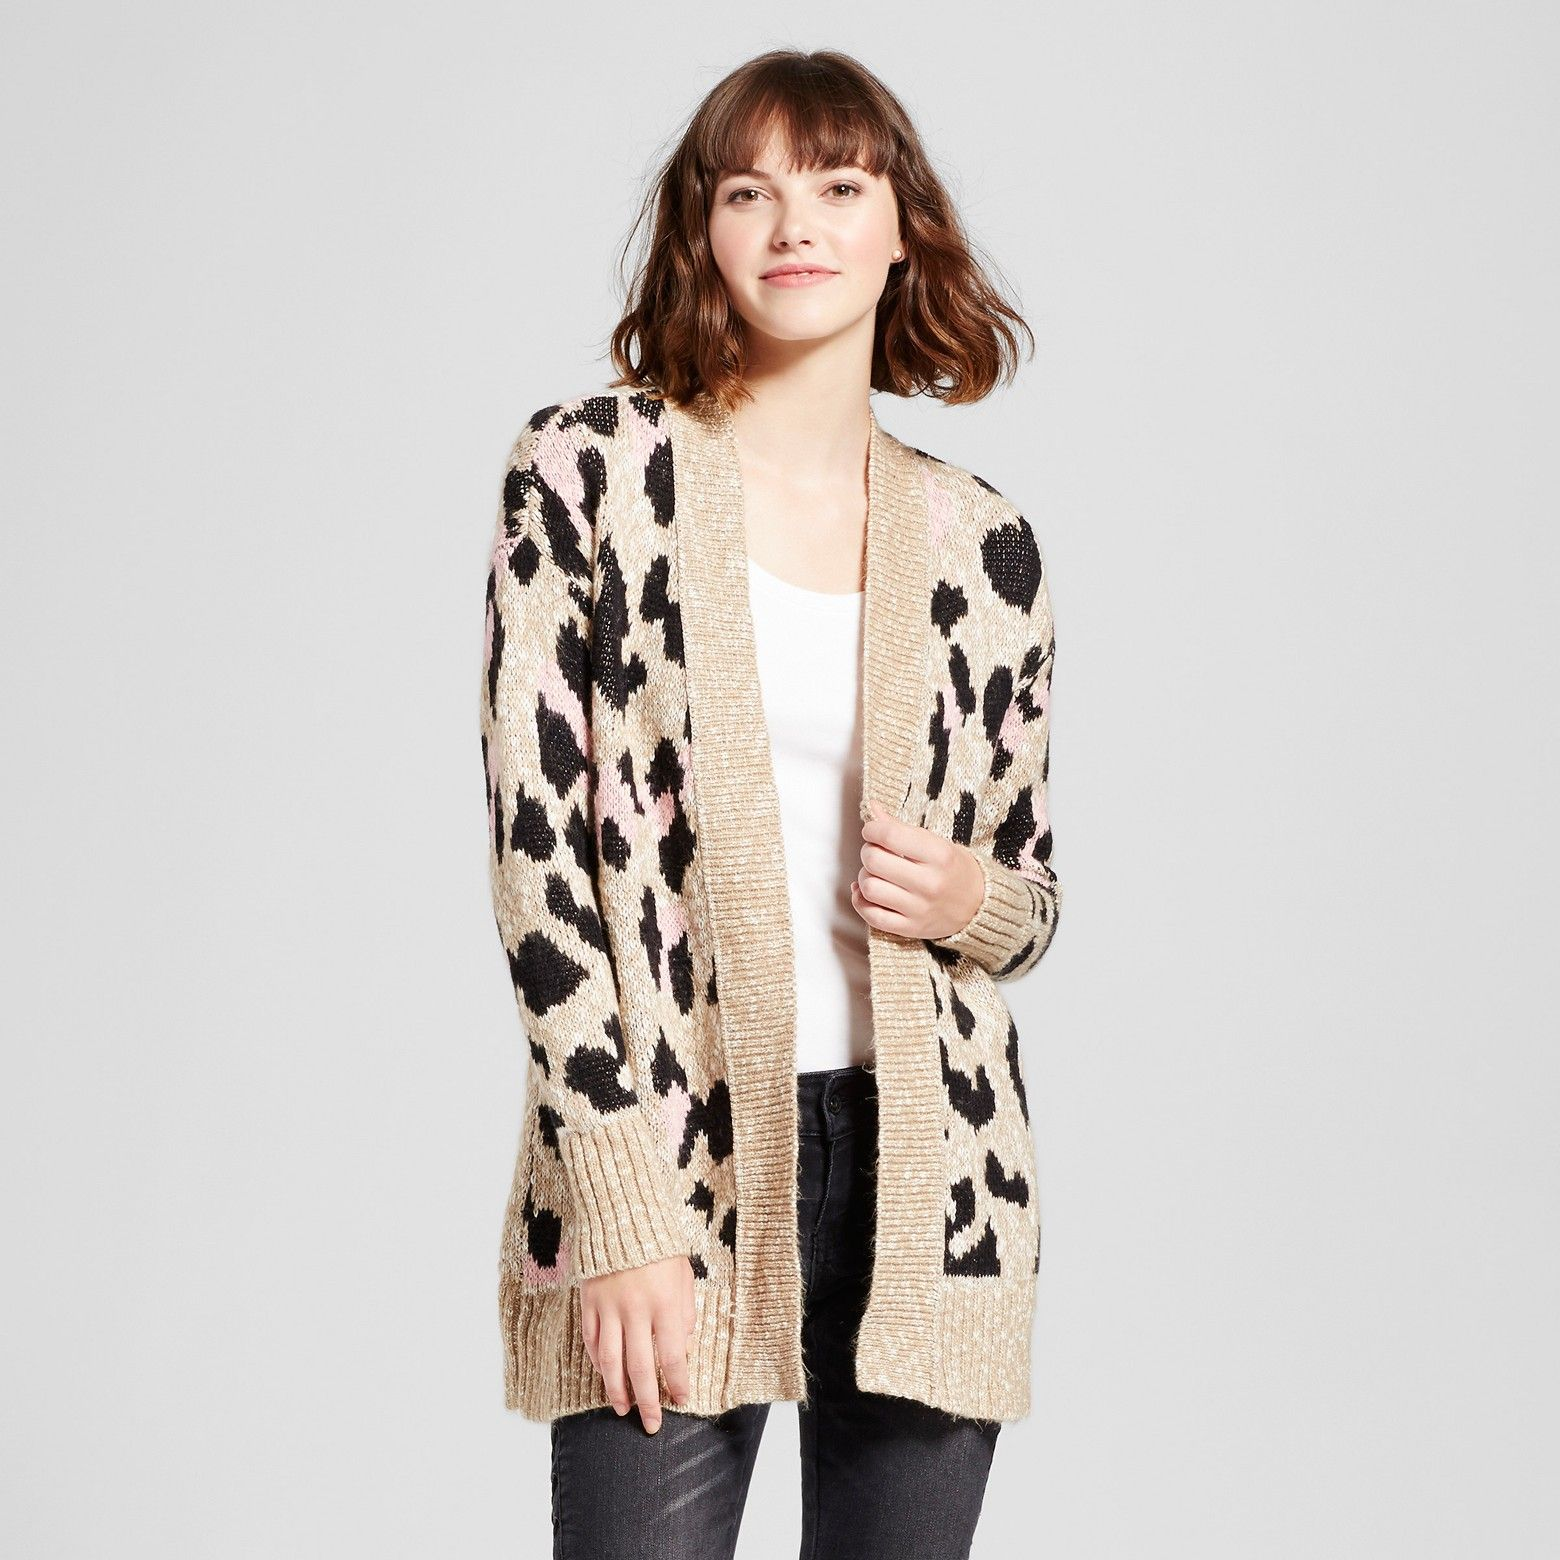 Mossimo Women's Leopard Print Cardigan Tan | Leopards and Printing